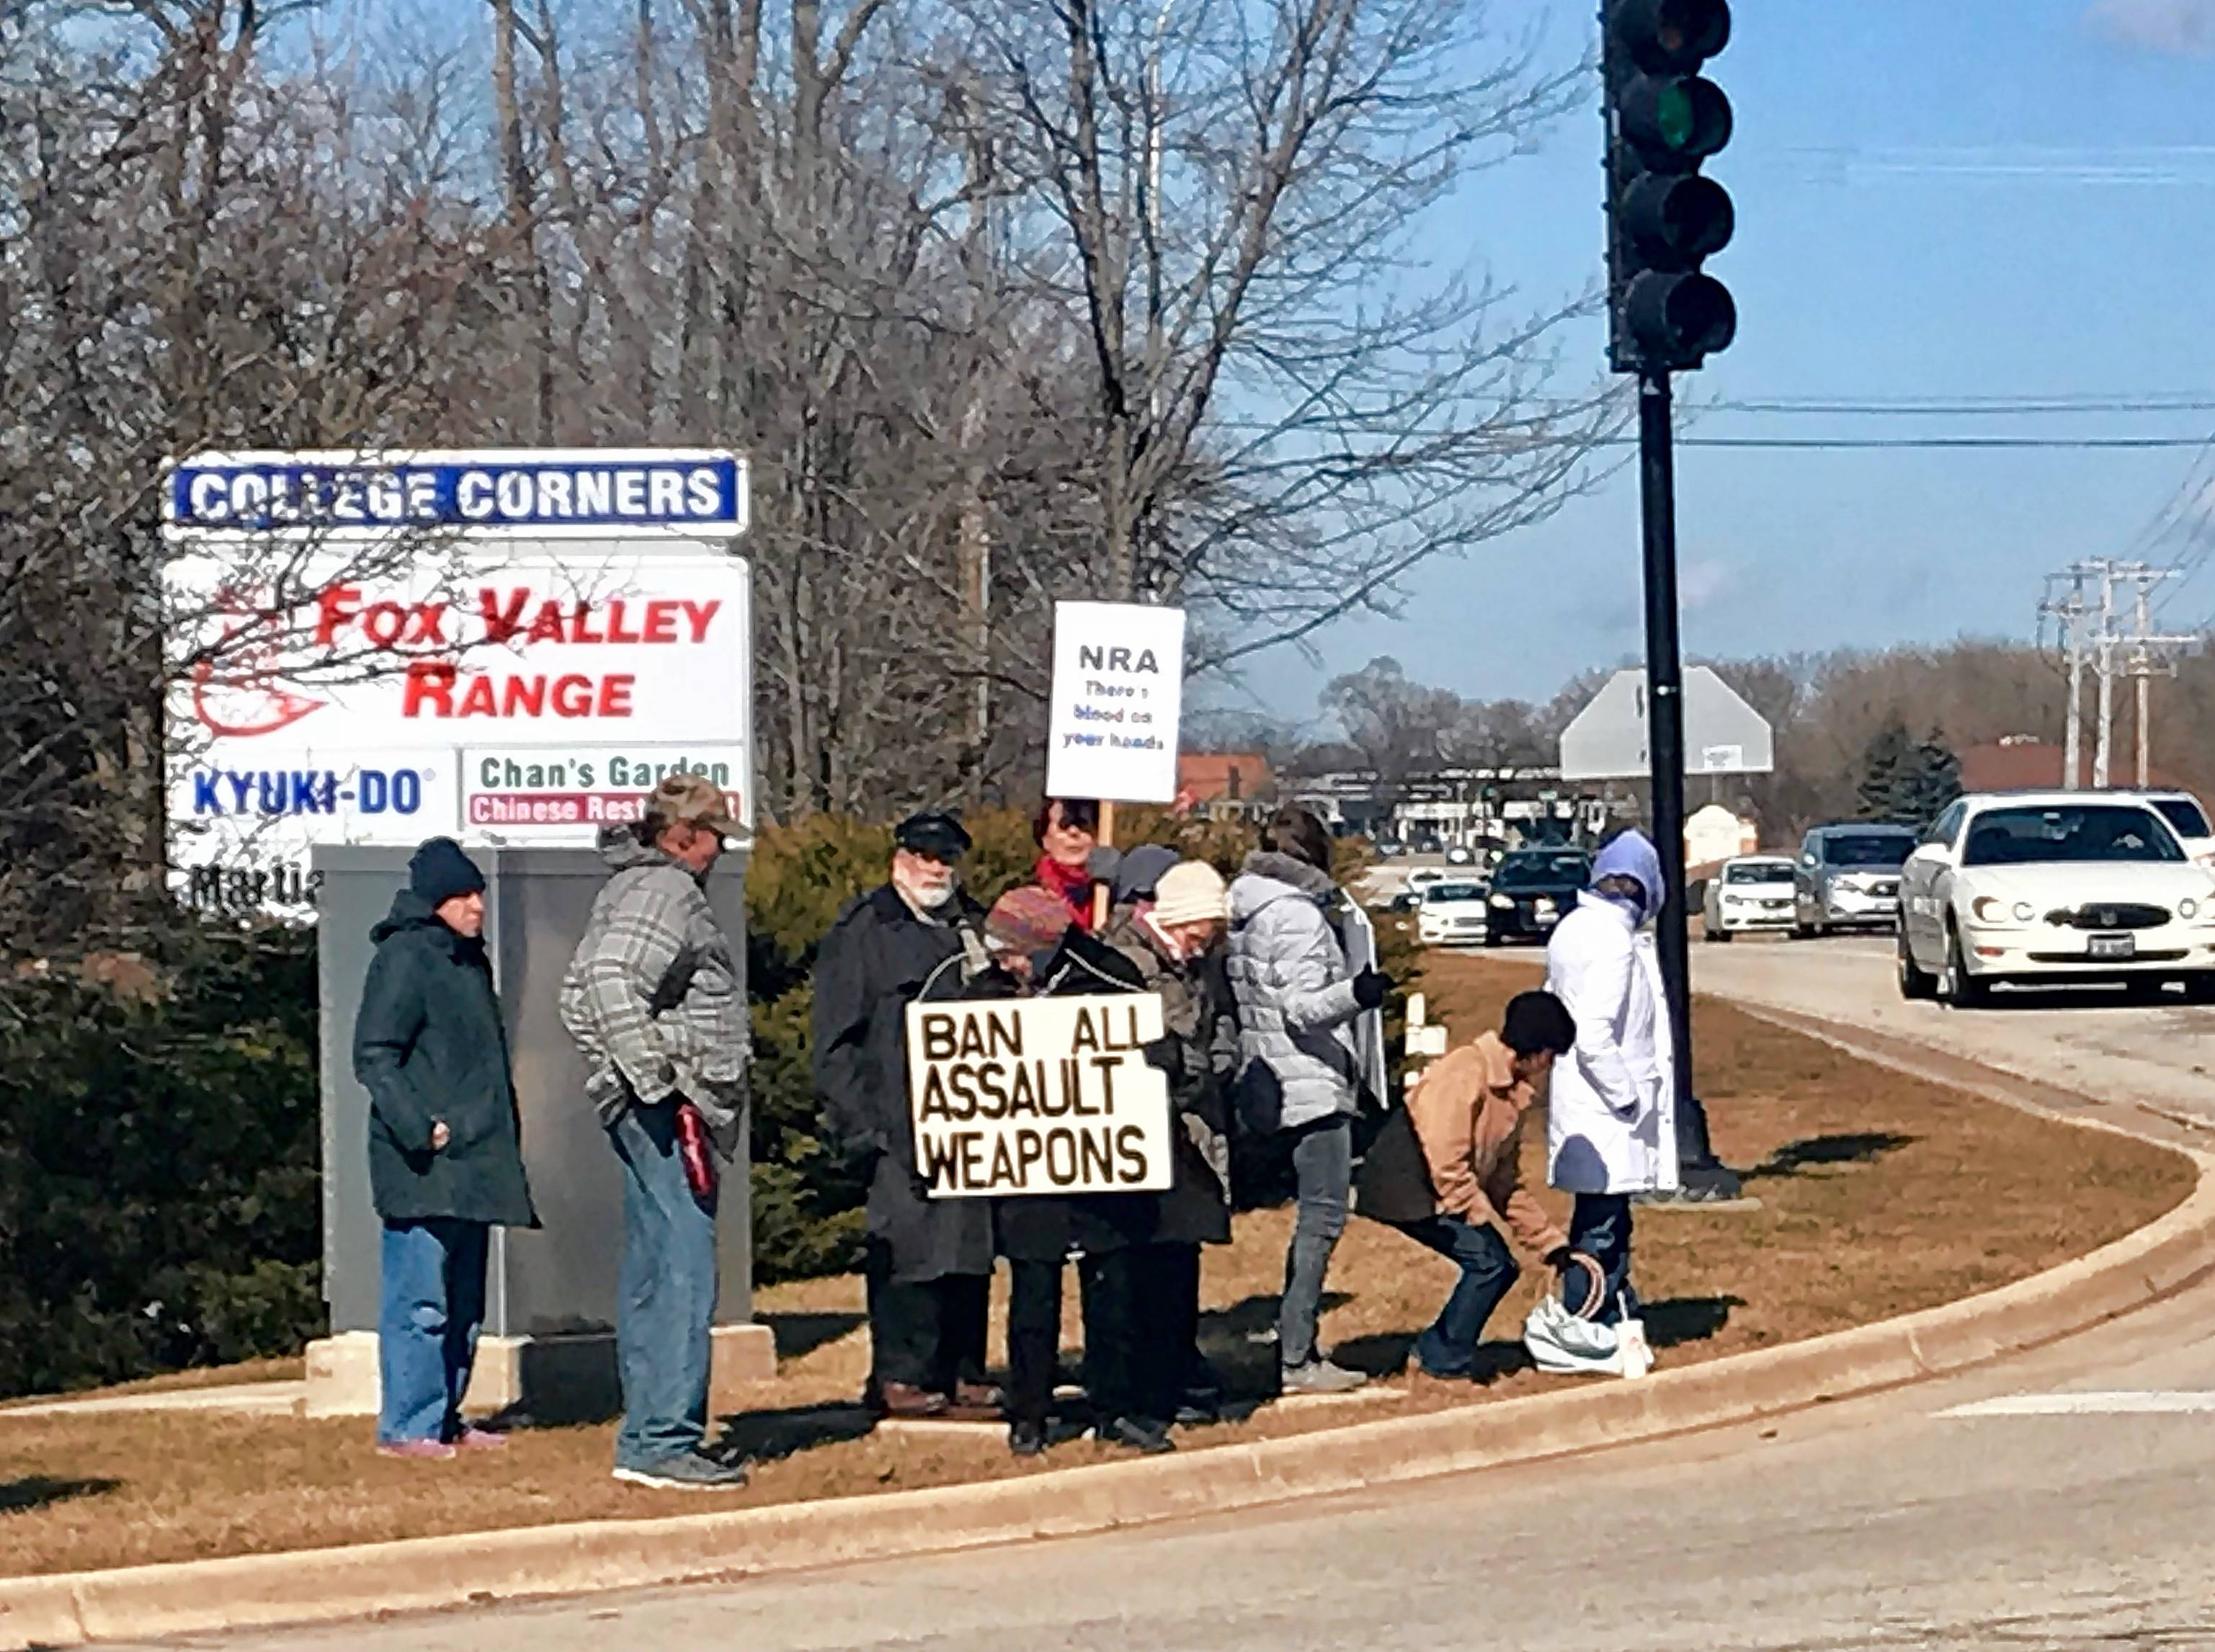 A rally to oppose assault rifles and support stricter gun control was held Sunday at McLean Boulevard and College Green Drive in Elgin.